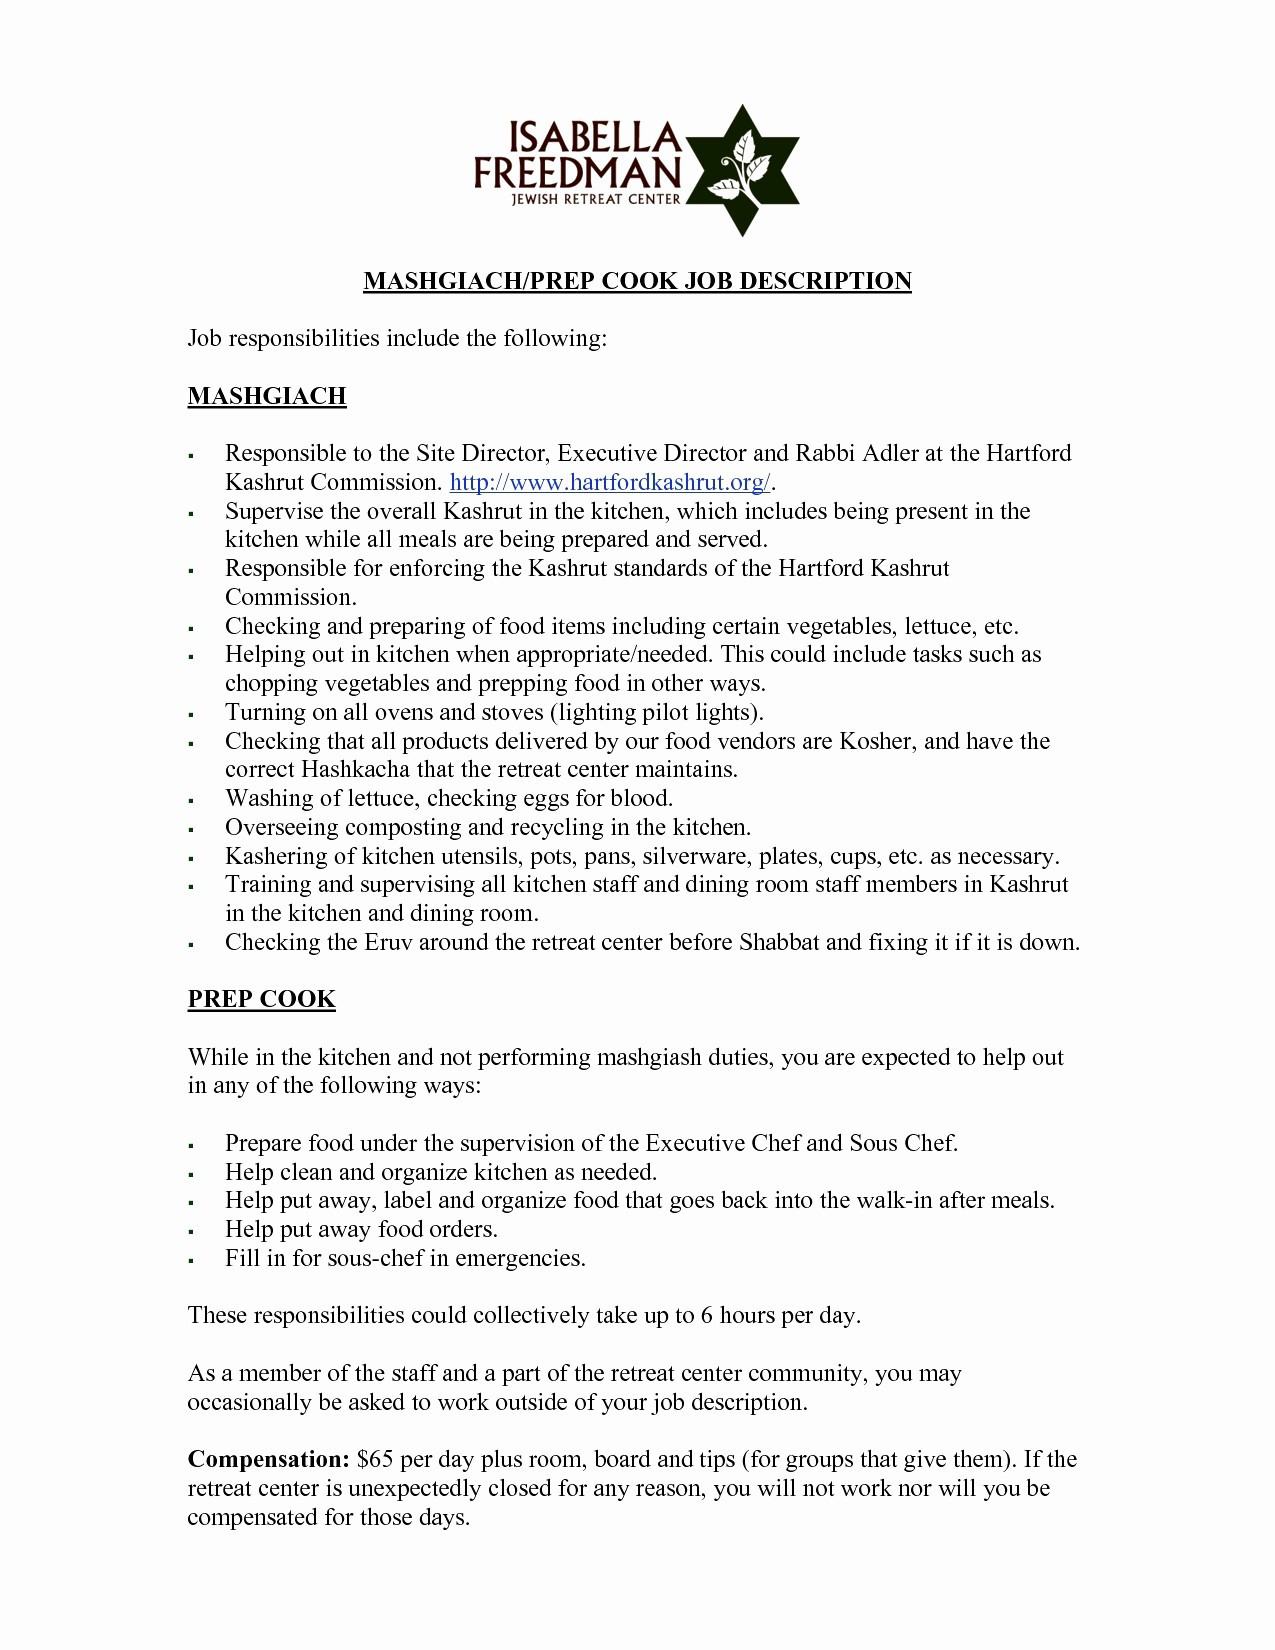 Job Description for Resume - Customer Service Executive Job Description Resume Reference Resume